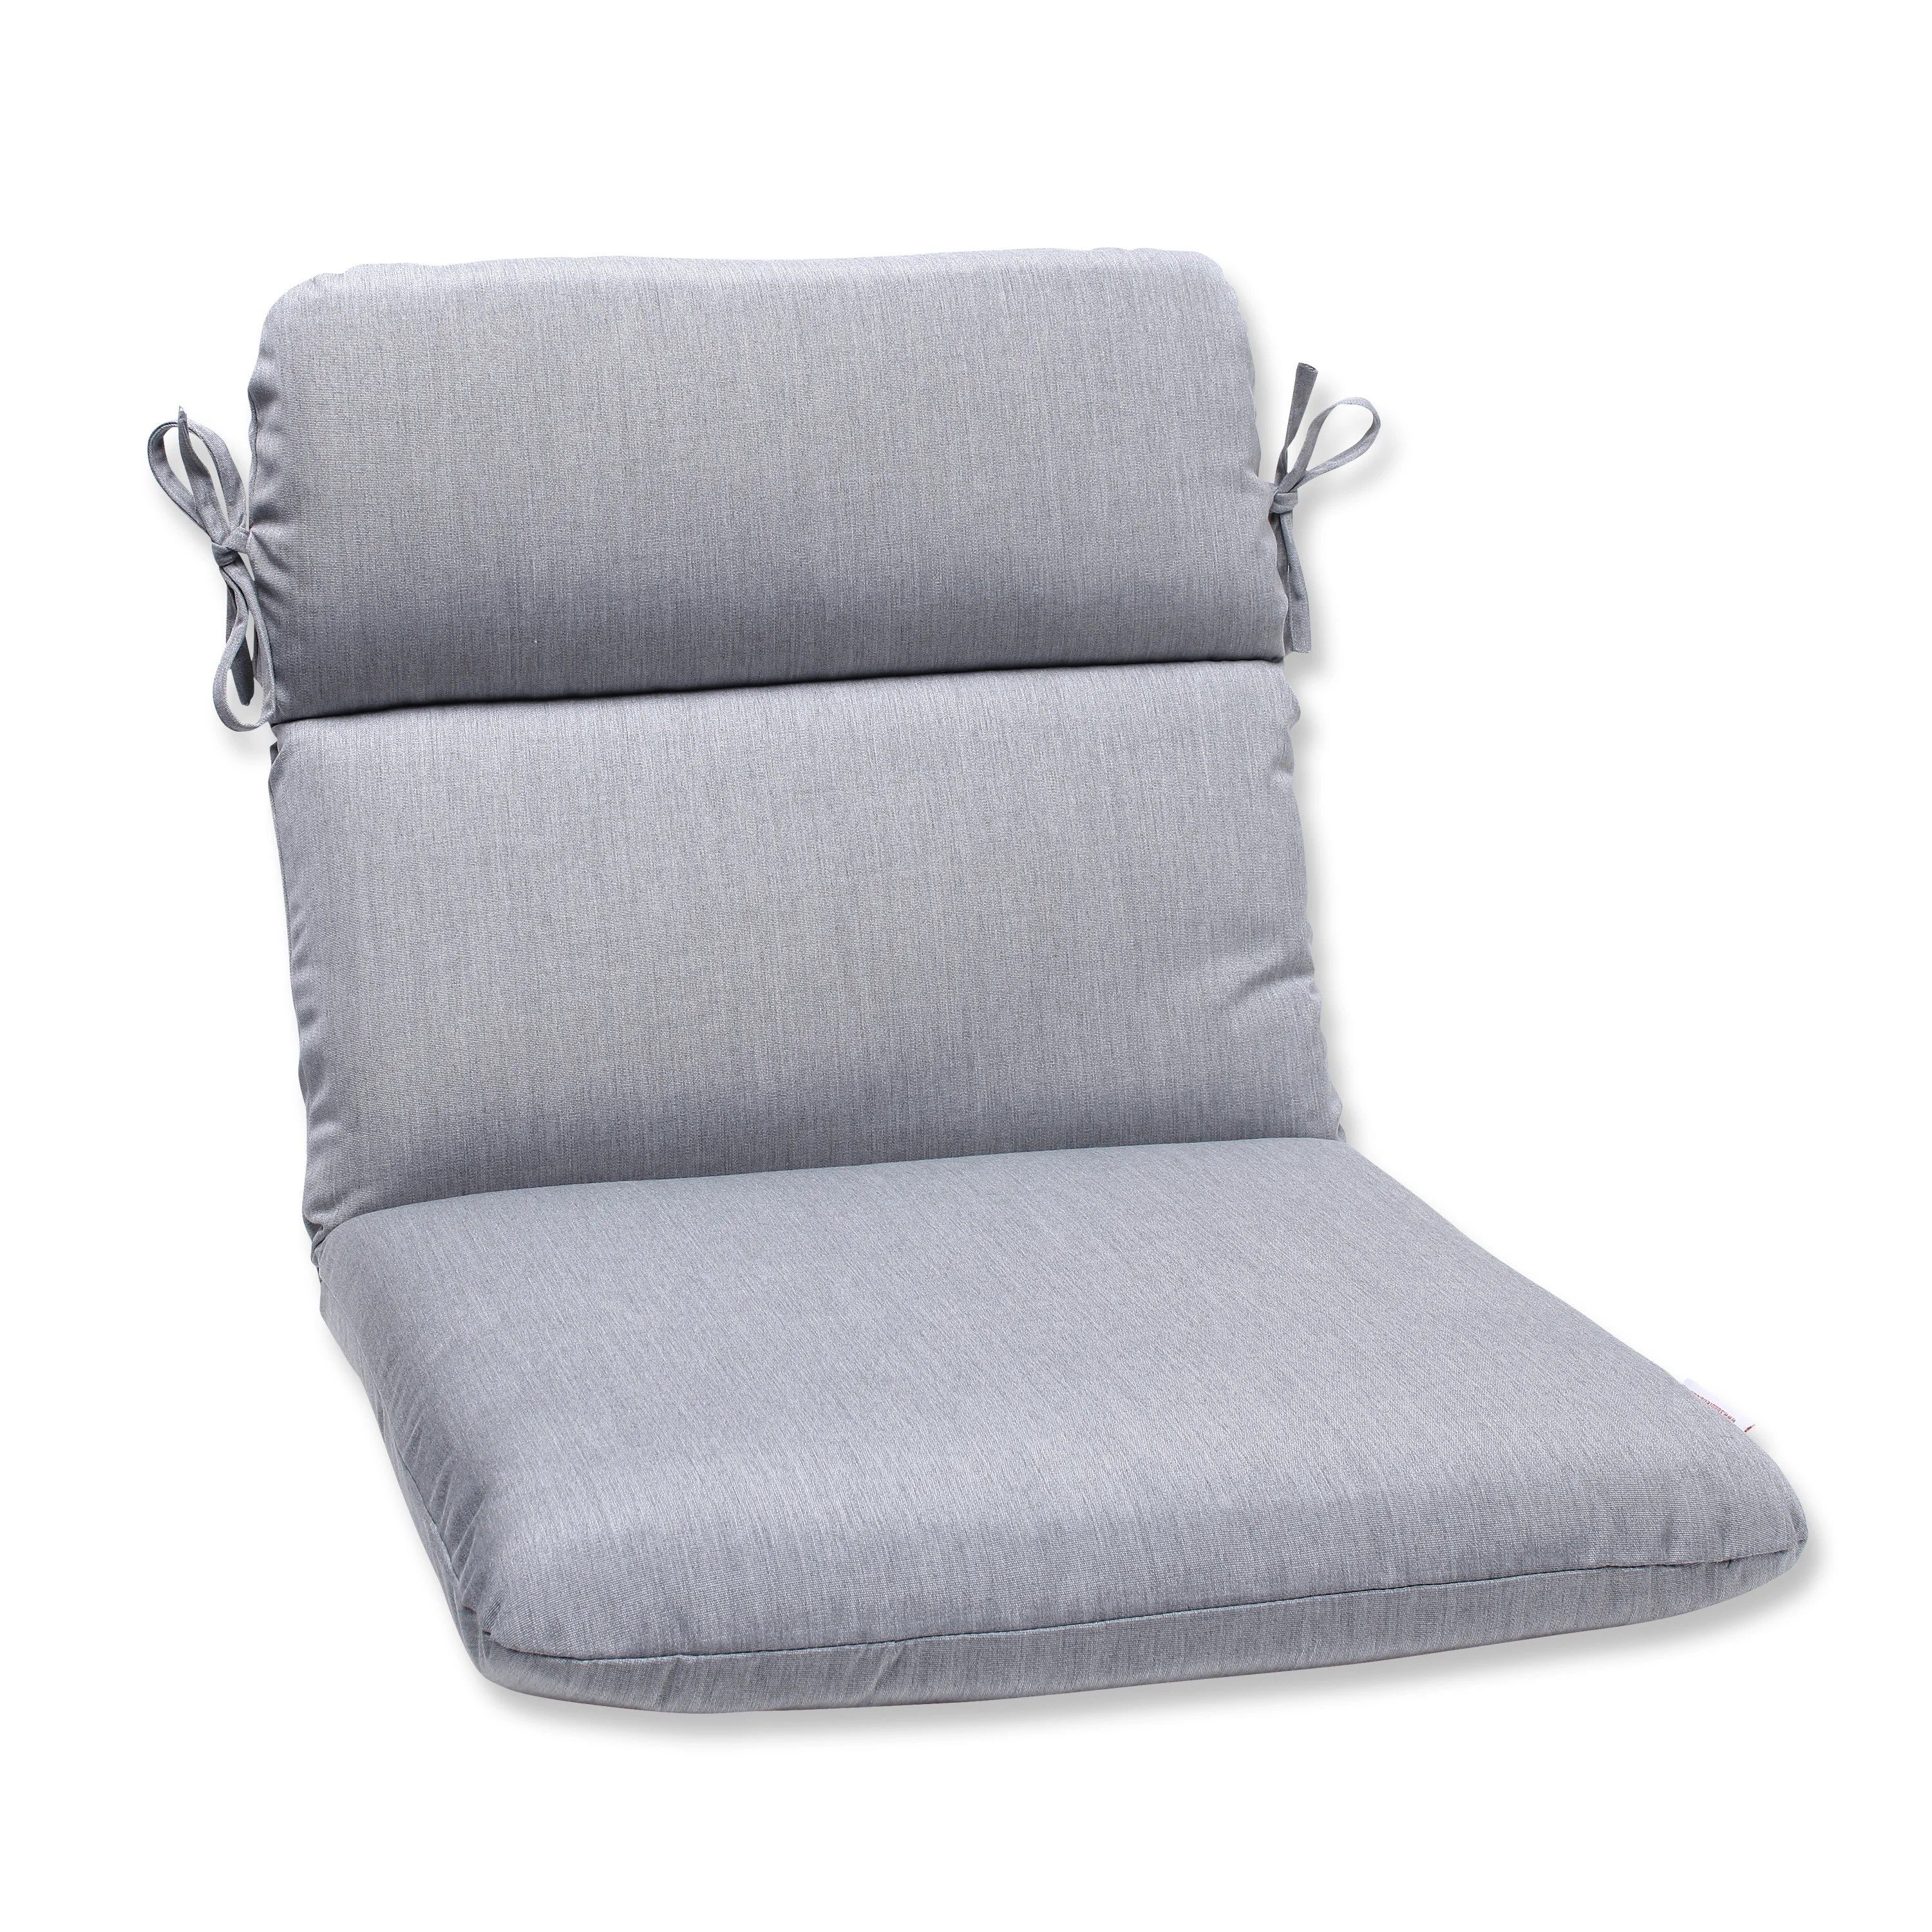 grey chair cushions dining covers australia pillow perfect rounded corners cushion with